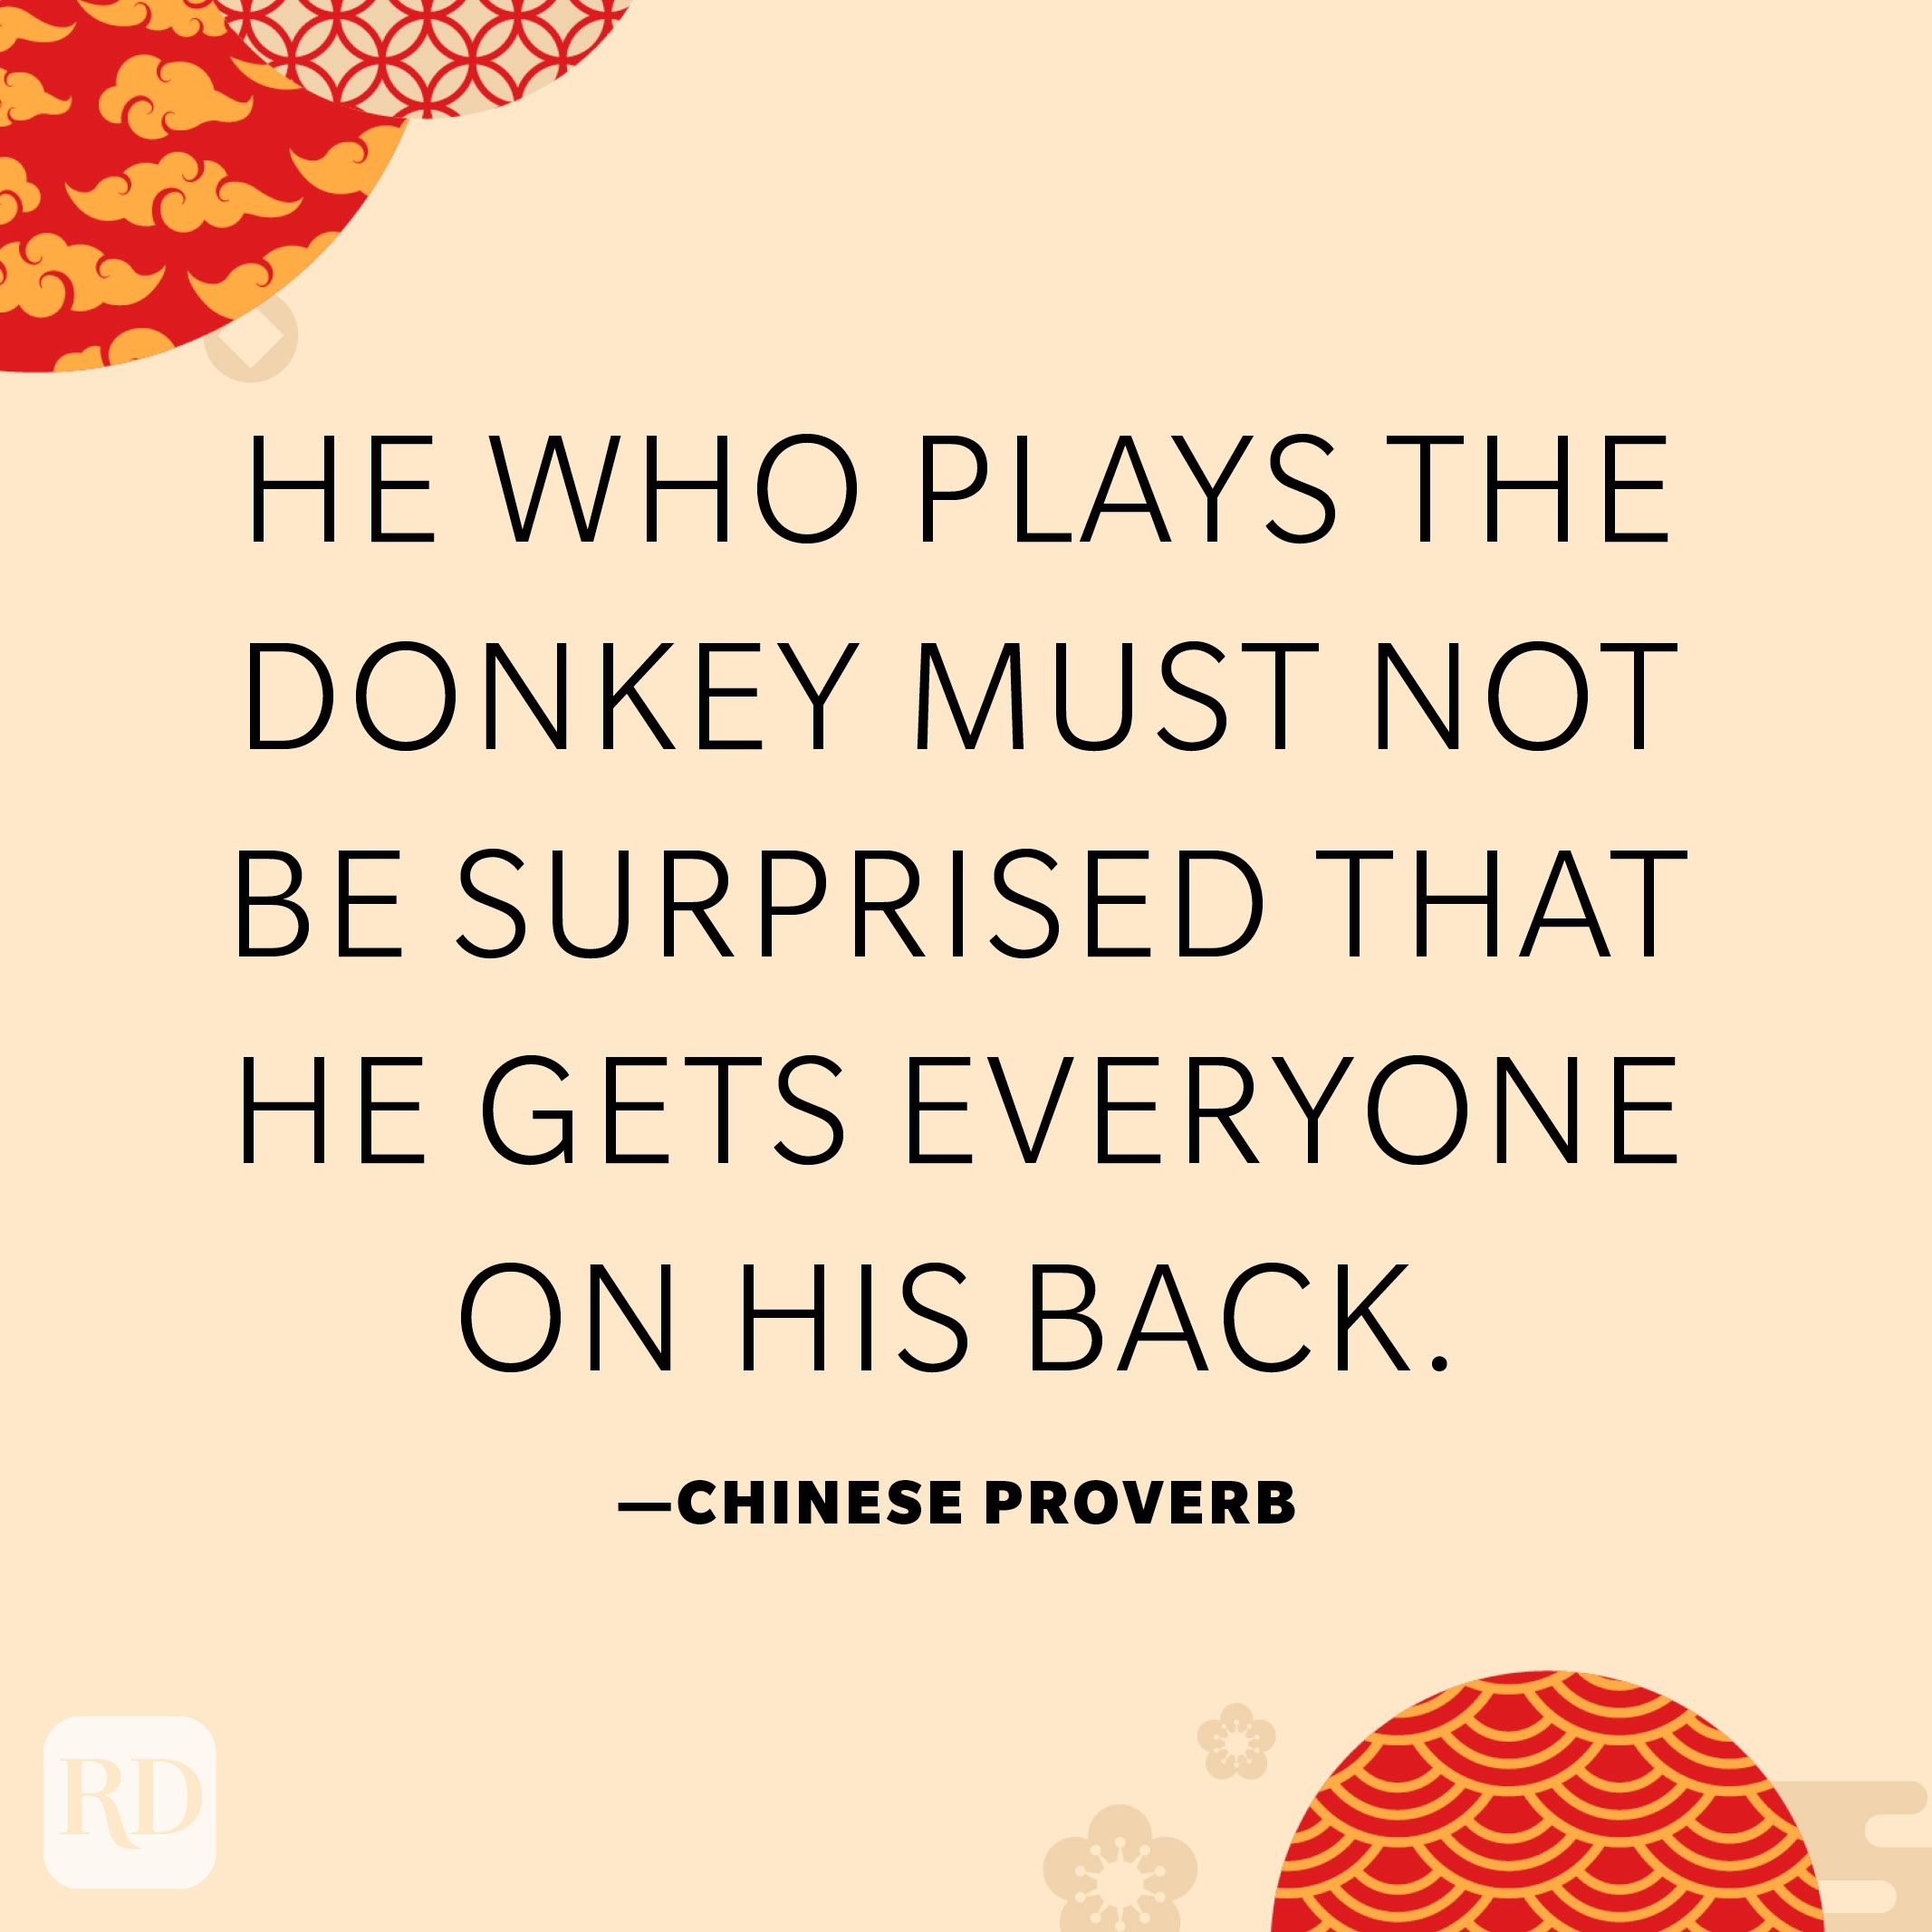 He who plays the donkey must not be surprised that he gets everyone on his back.